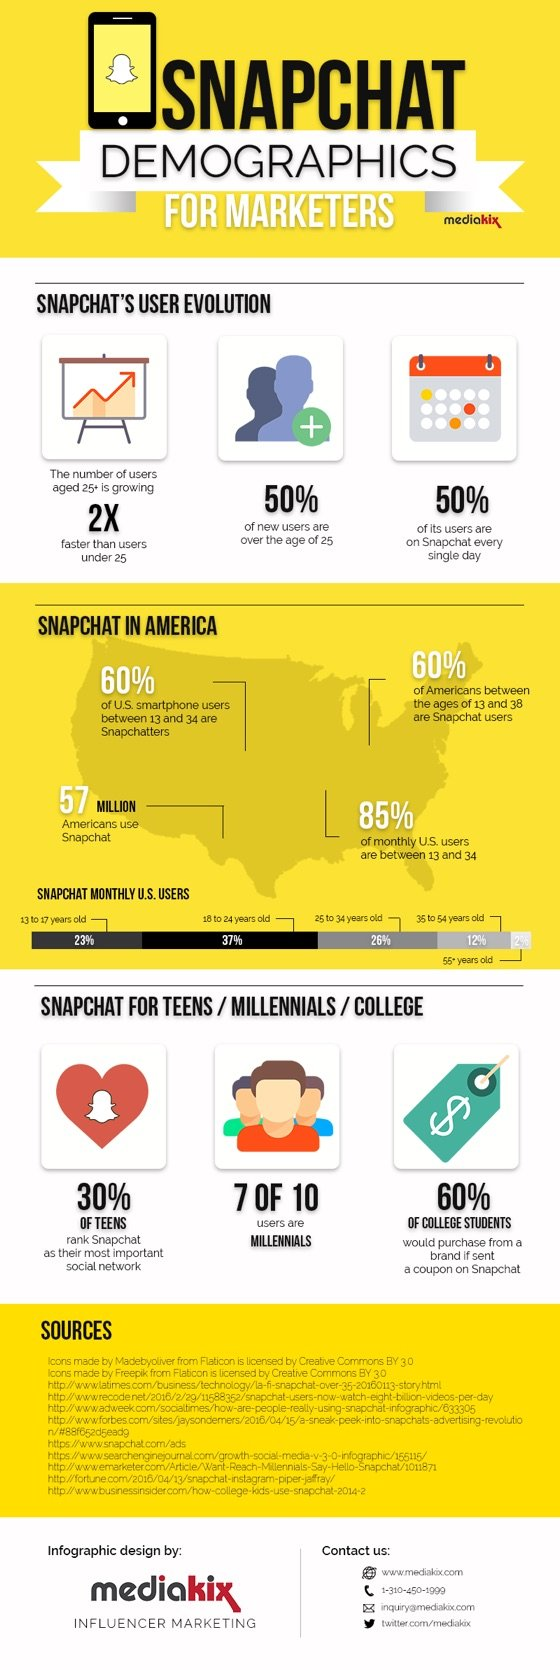 Snapchat demographics infographic